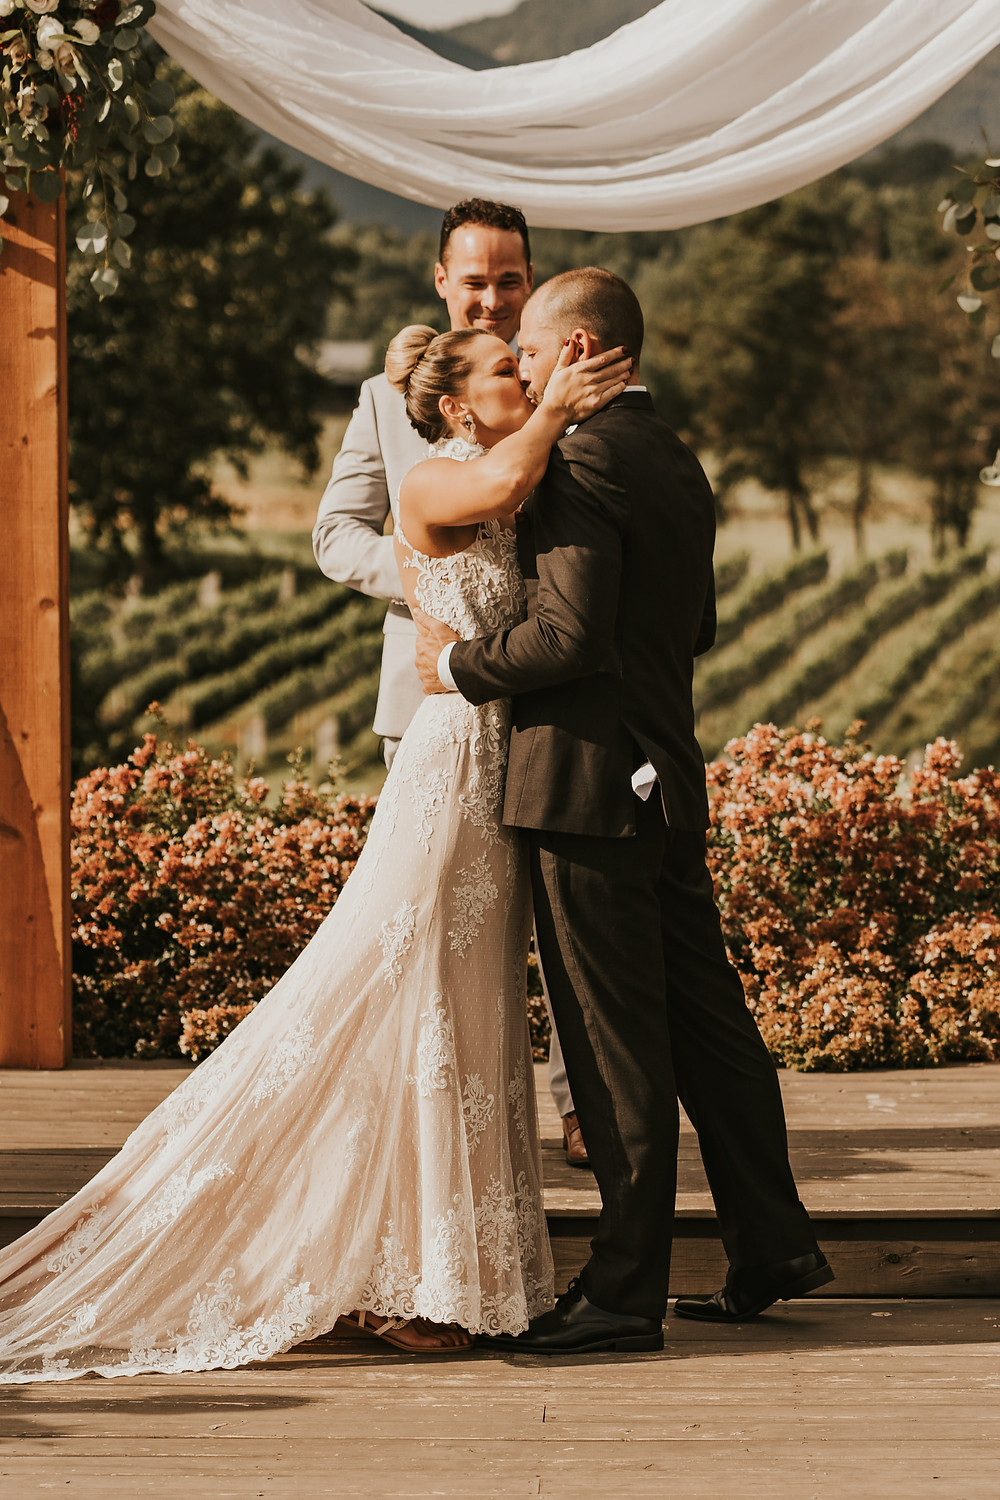 wedding ceremony in a vineyard. Bride and Groom kissing